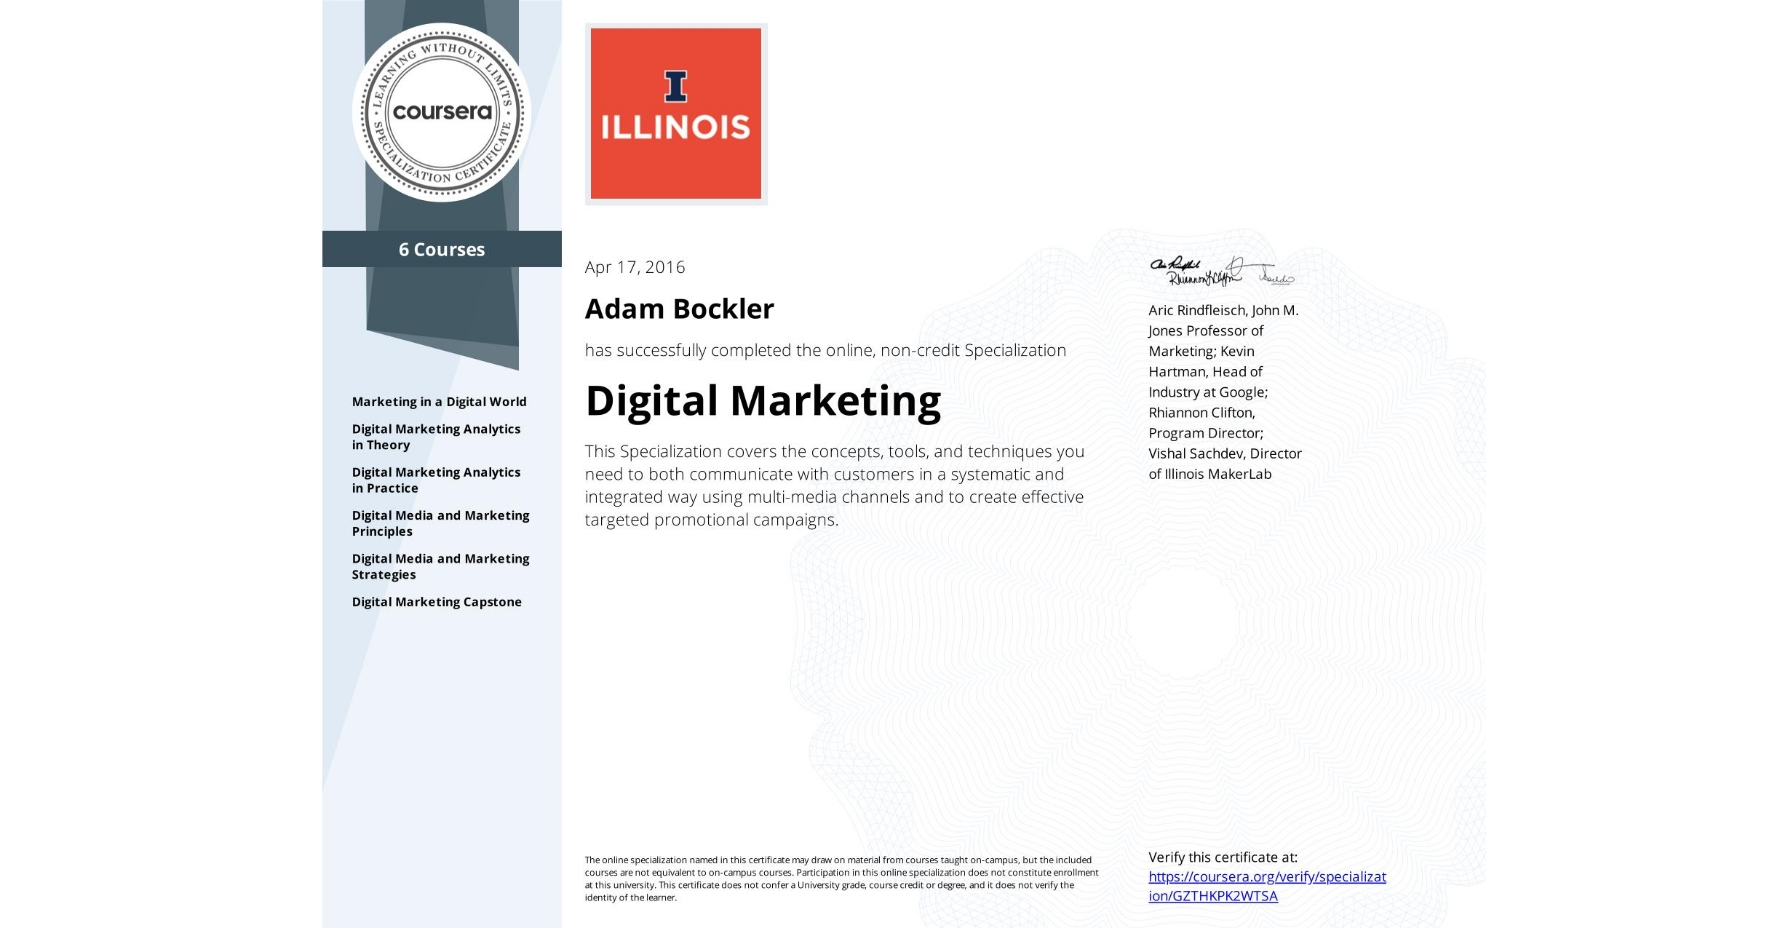 View certificate for Adam Bockler, Digital Marketing, offered through Coursera. This Specialization covers the concepts, tools, and techniques you need to both communicate with customers in a systematic and integrated way using multi-media channels and to create effective targeted promotional campaigns.